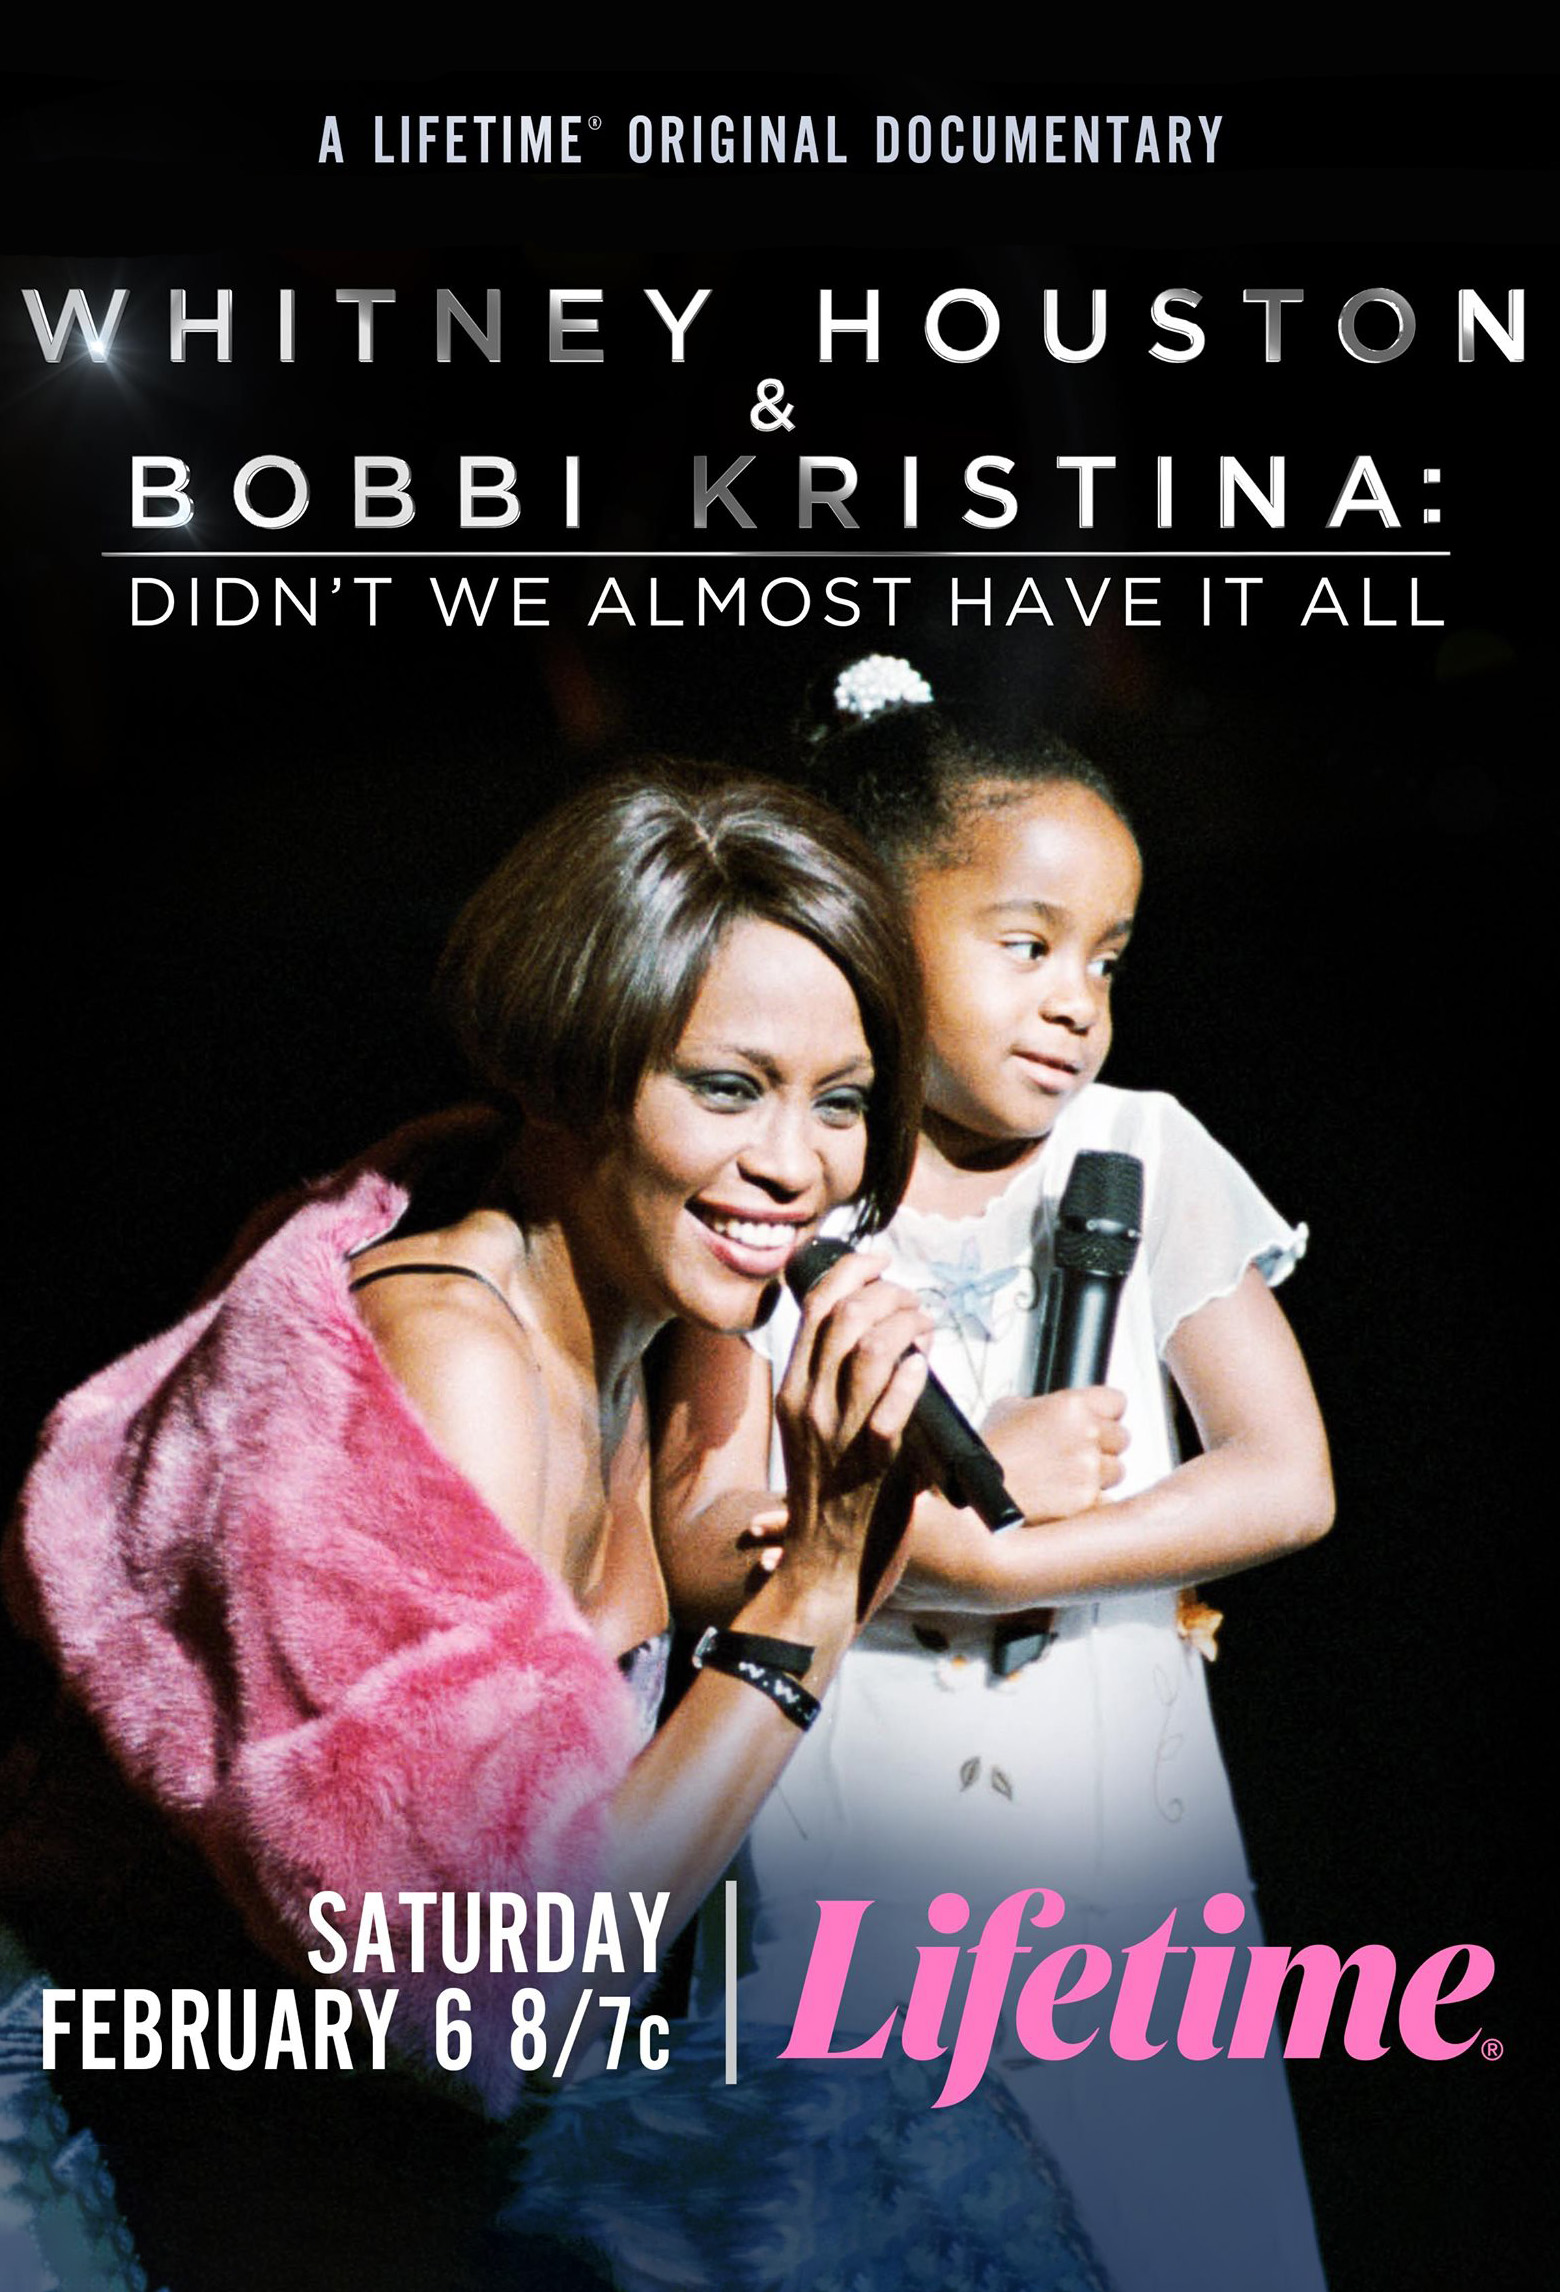 Whitney Houston & Bobbi Kristina: Didn't We Almost Have It All 2021